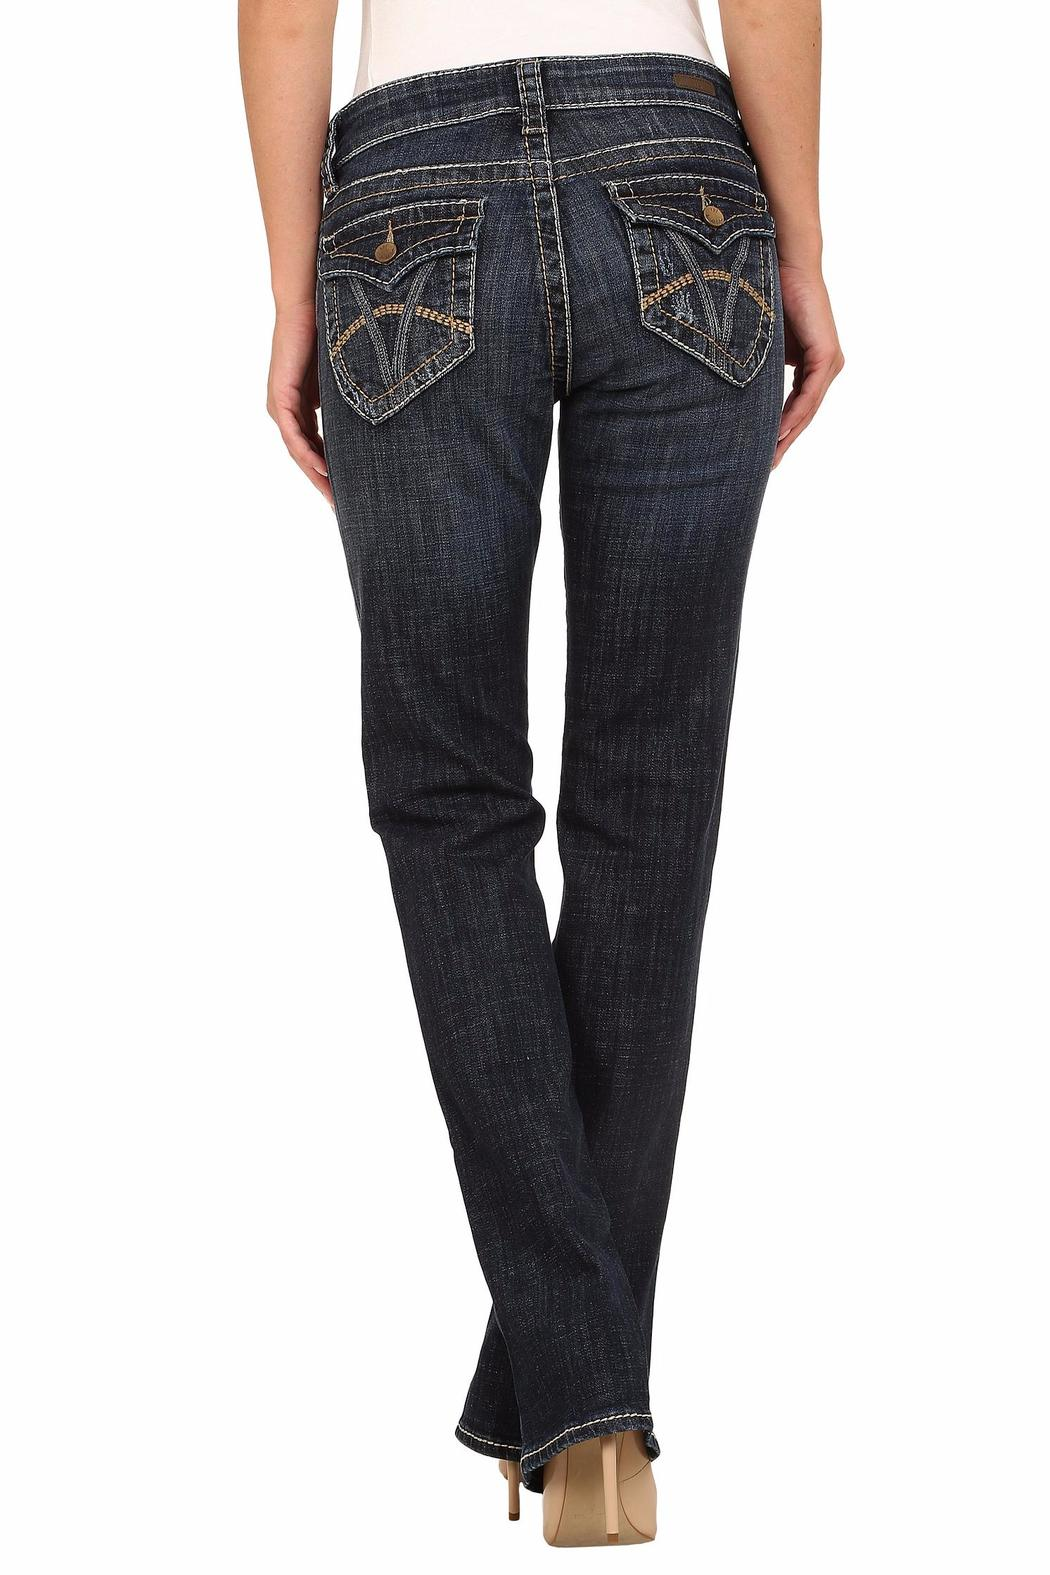 Kut from the Kloth Natalie Bootleg Jeans - Front Full Image